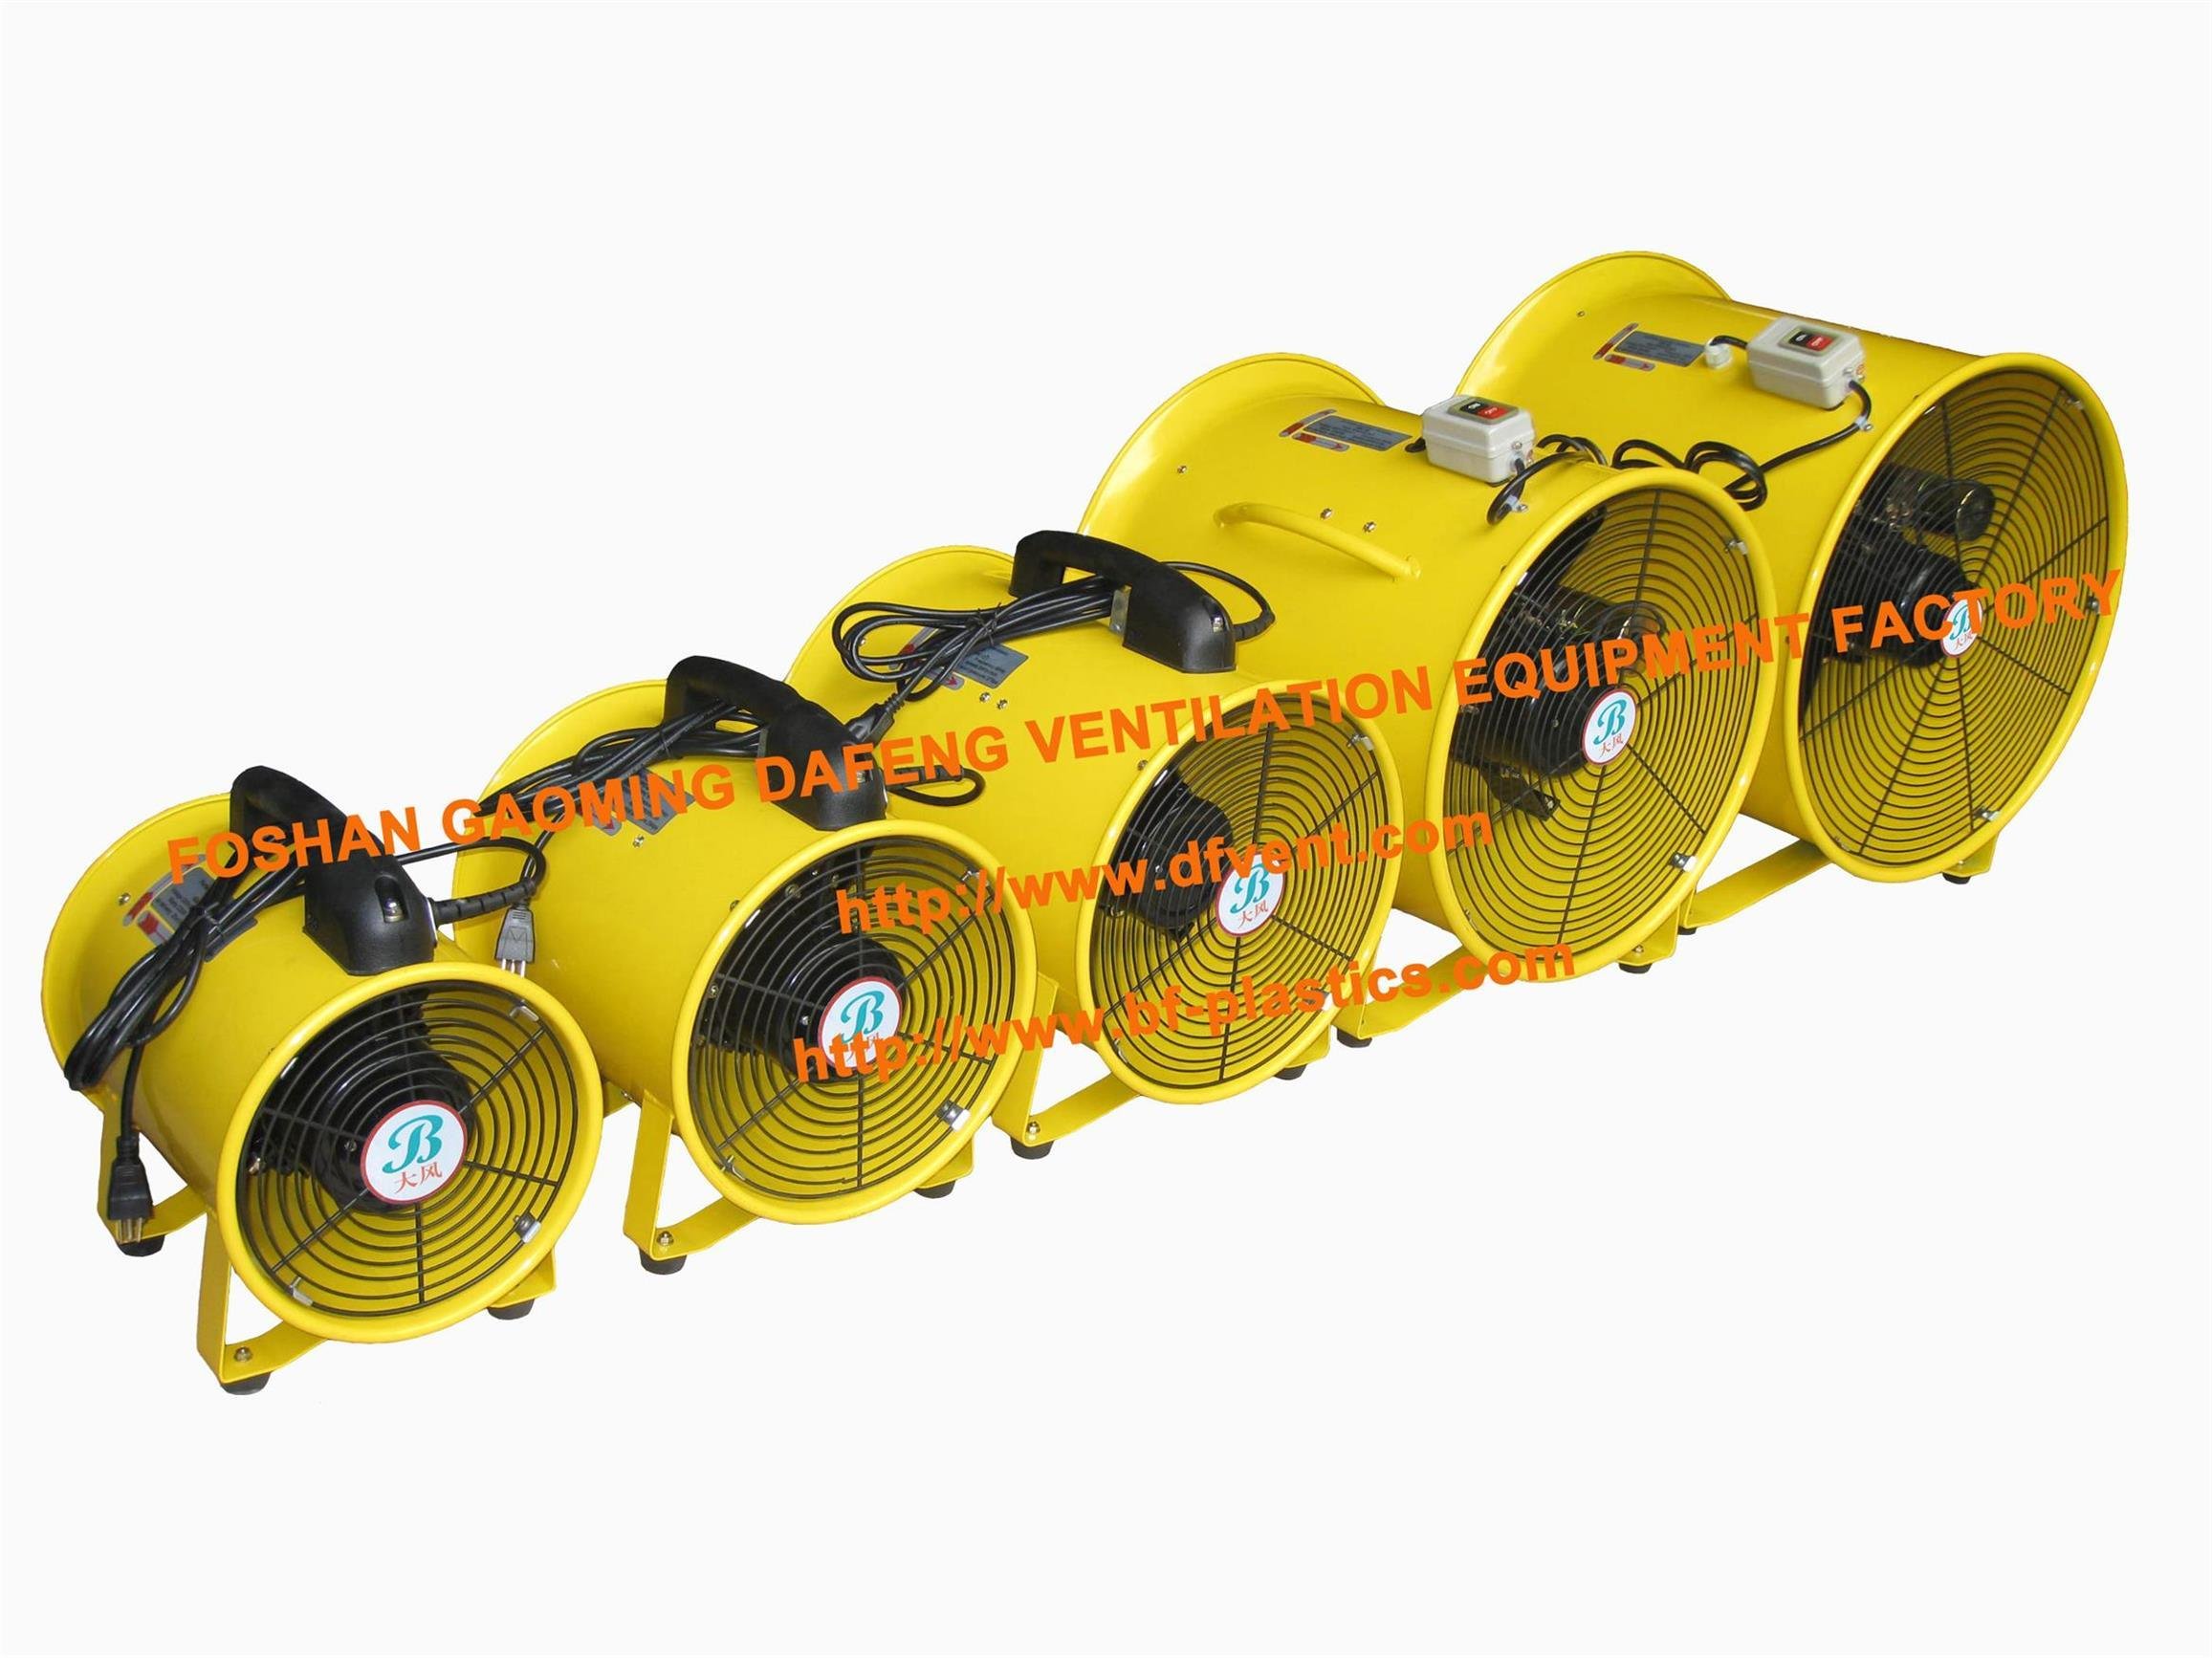 Portable Extractor Fan Hot Item Portable Ventilator Axial Blower Workshop Extractor Fan 220 240v